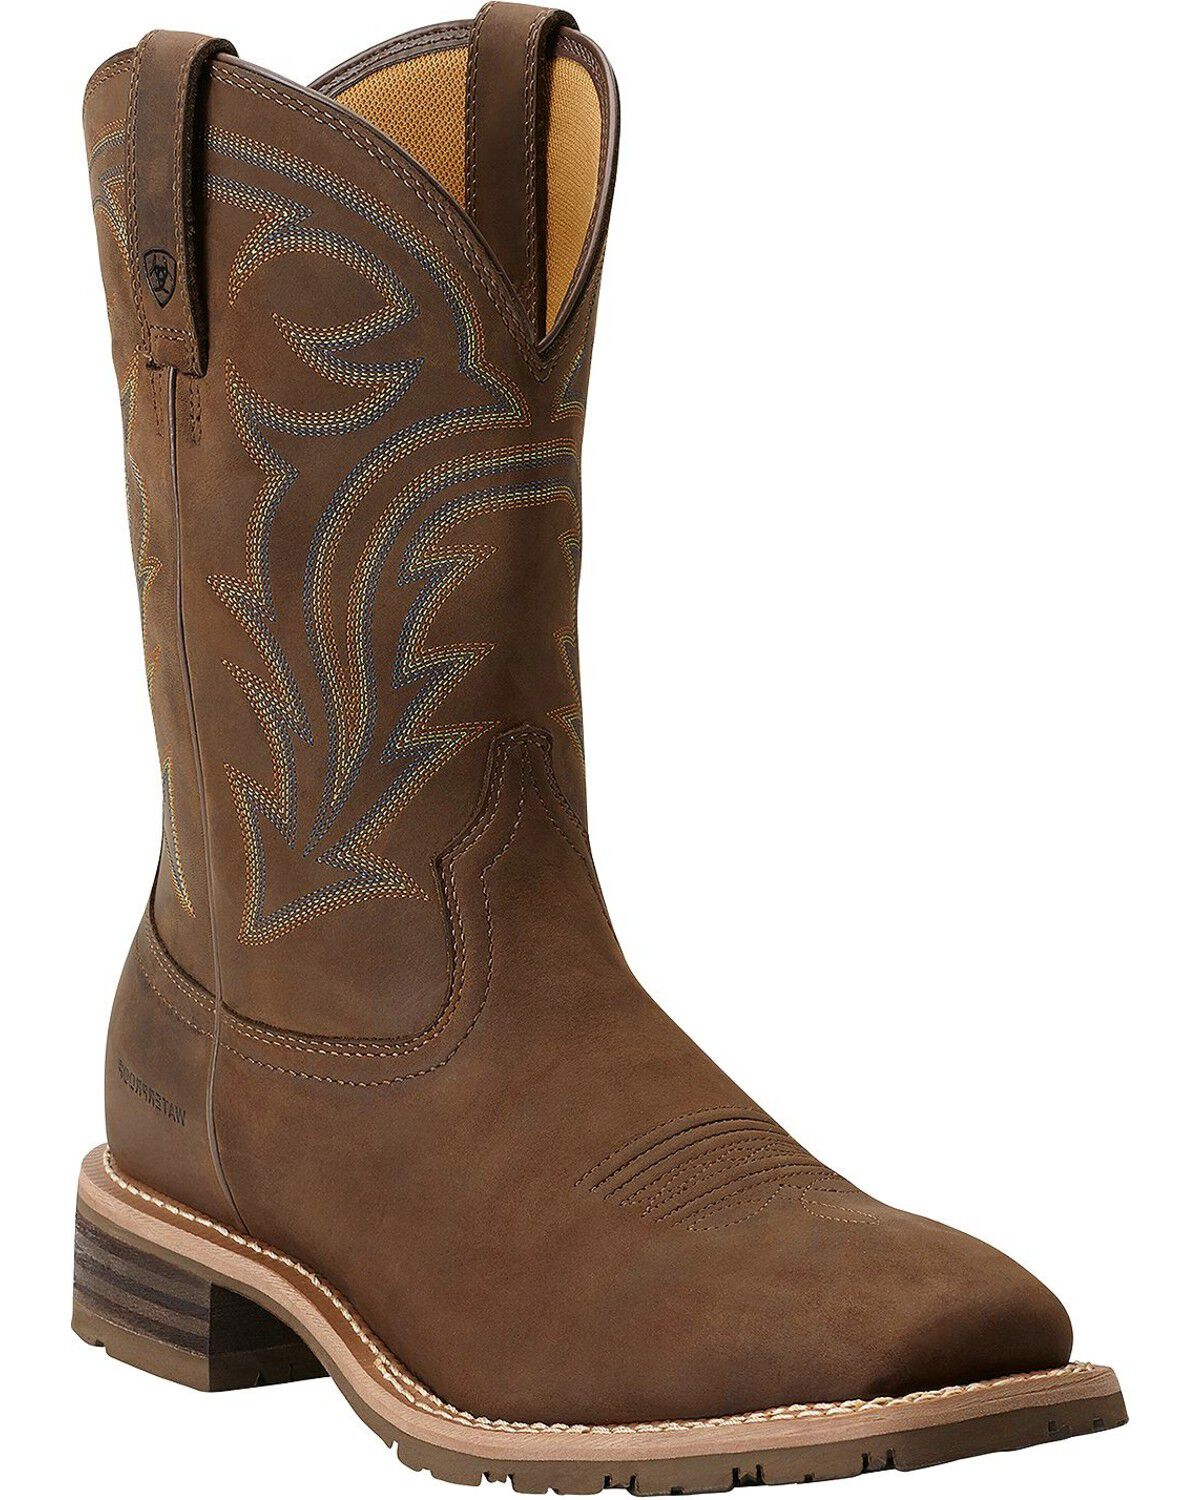 Ariat Men\u0027s Waterproof Hybrid Rancher Boots